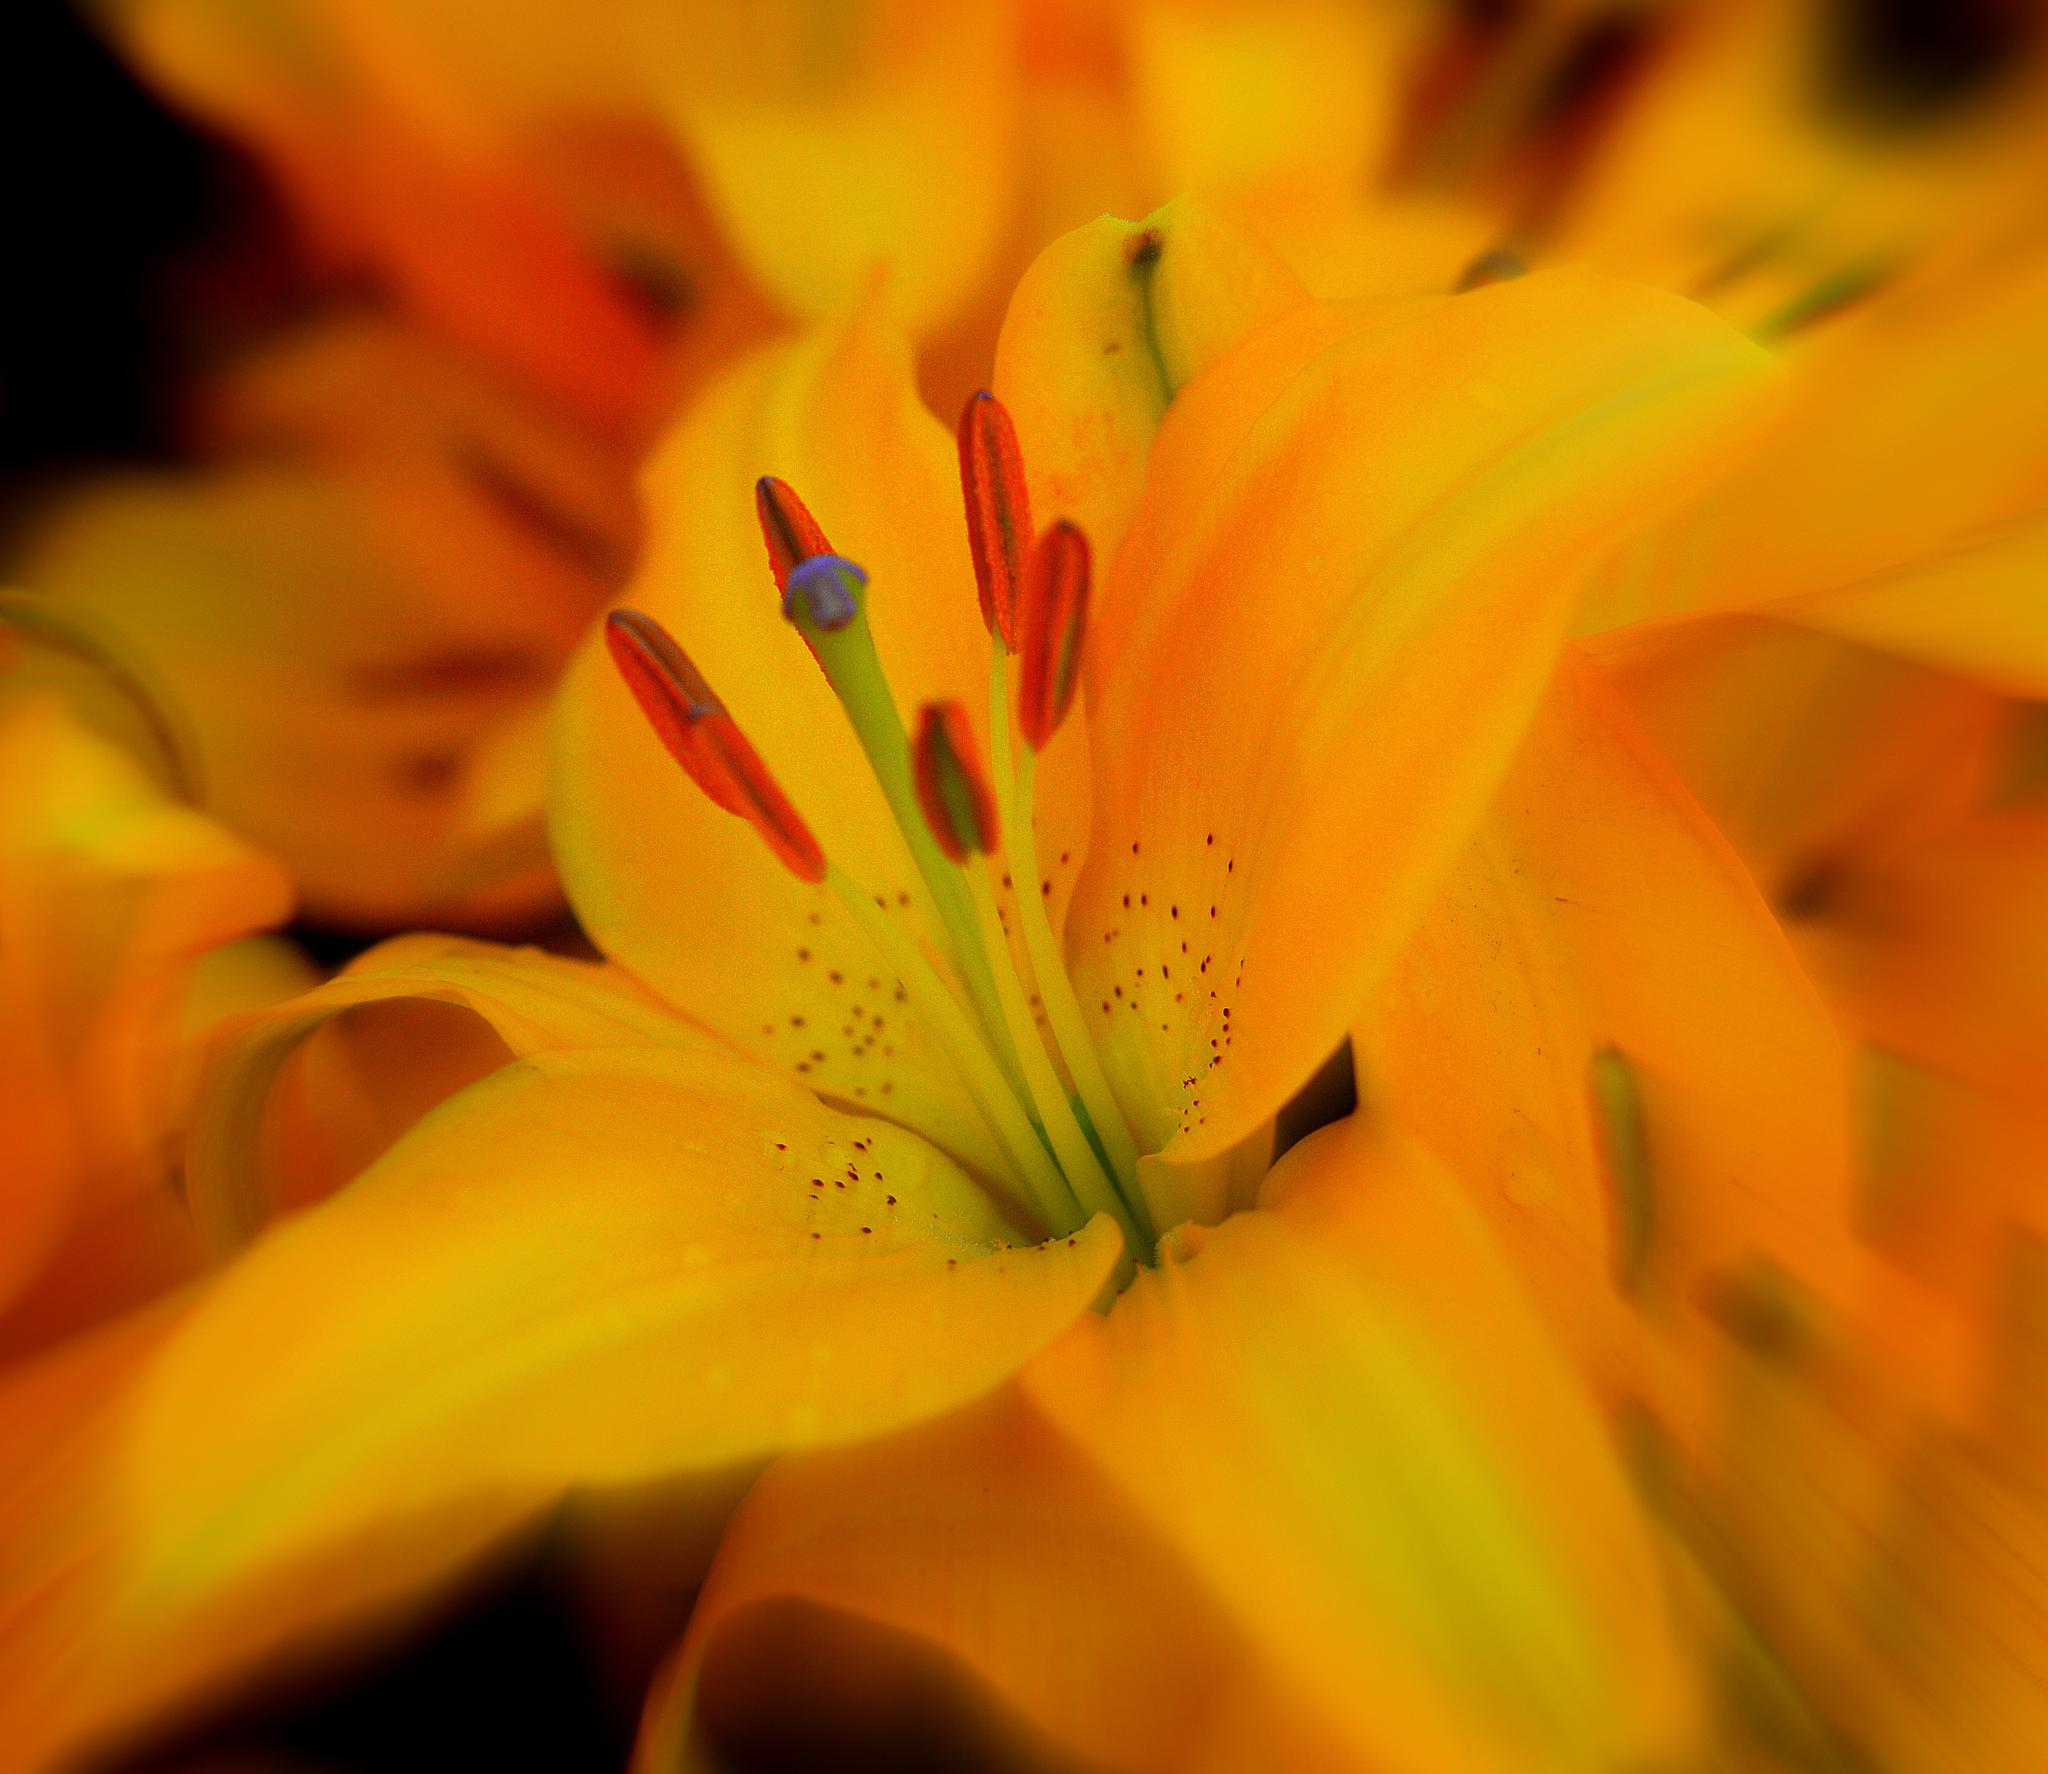 Floral 441 by mpross1